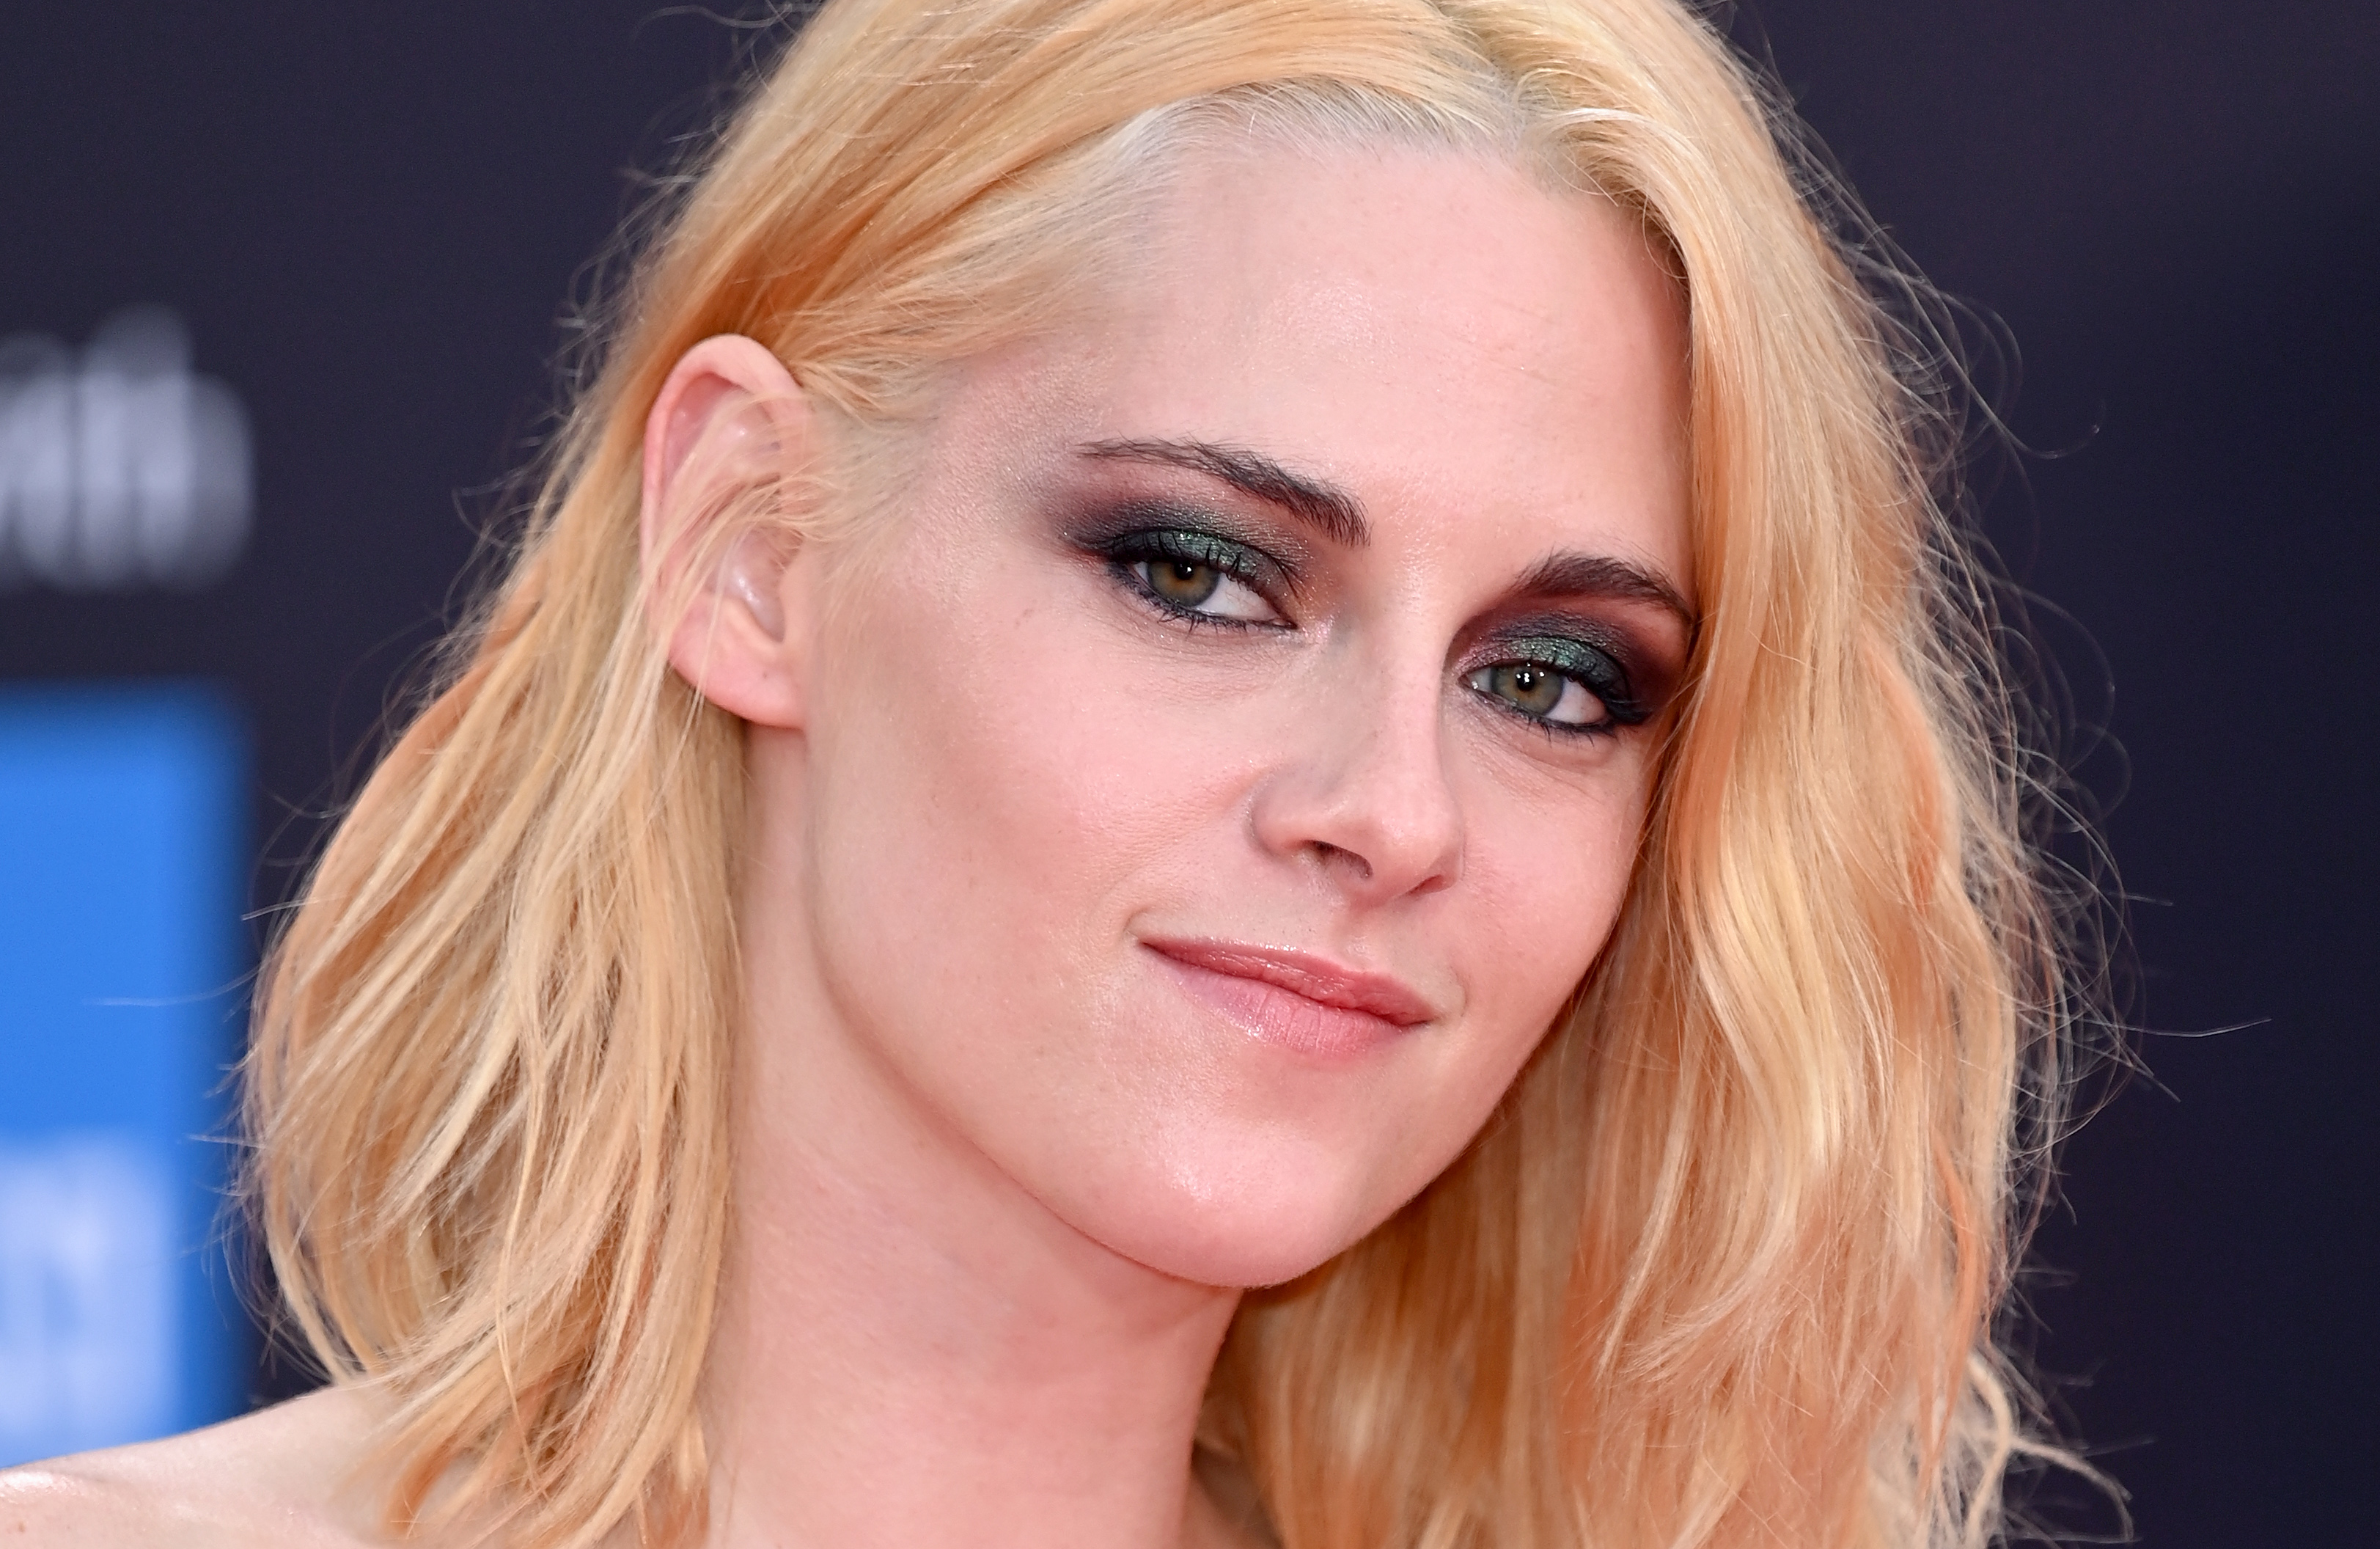 Kristen Stewart on fame and why she's only made '5 really good films'